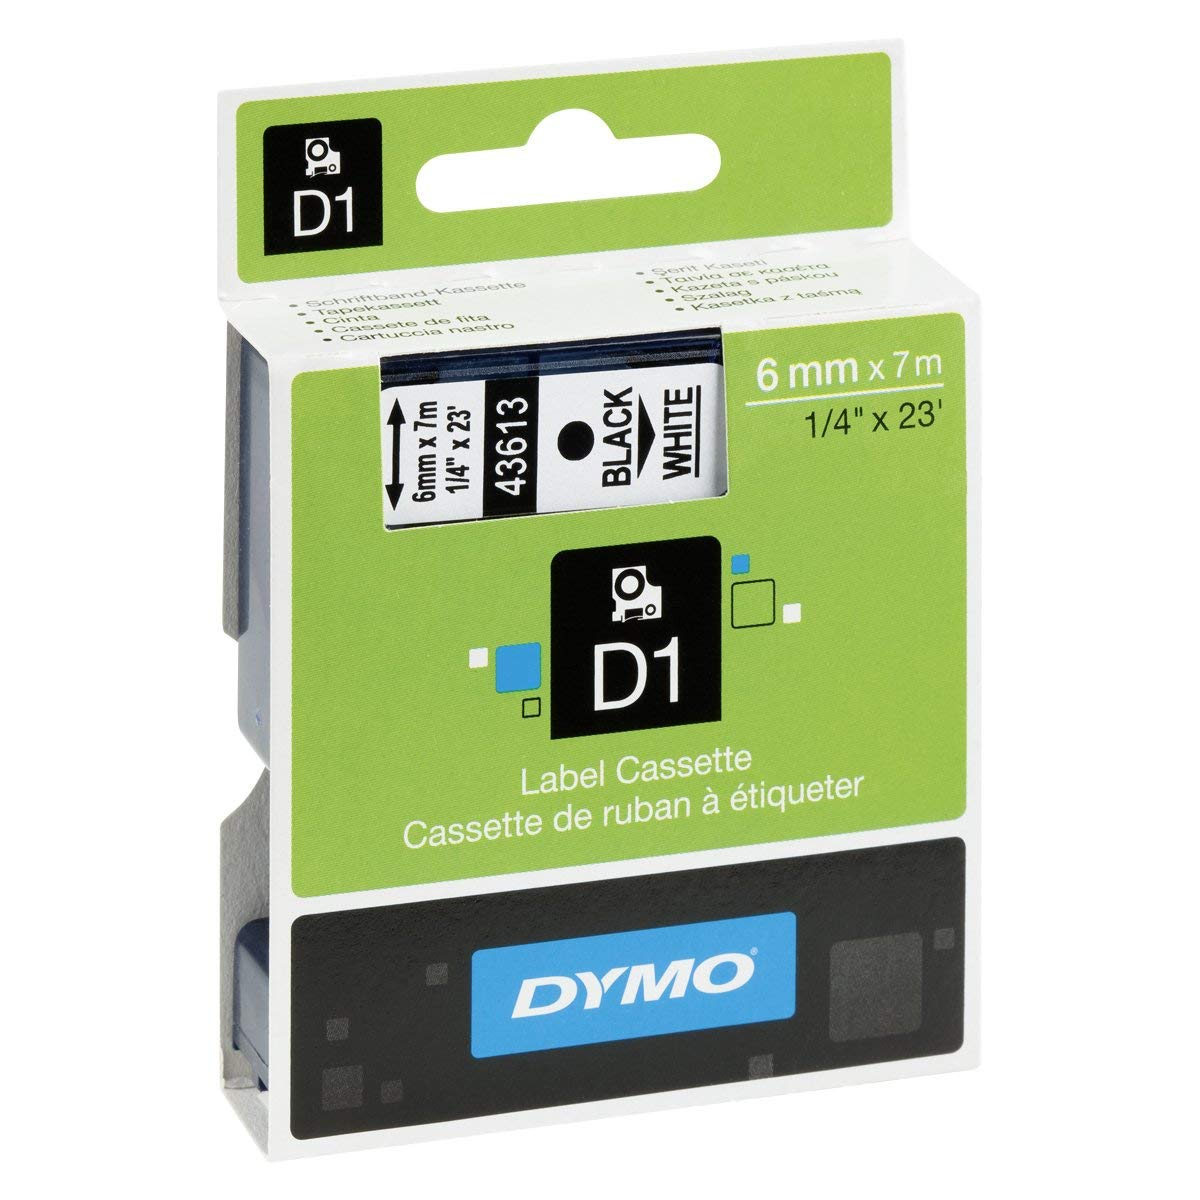 Dymo S0720780 (43613) D1 Label Tape 6mm x 7m - Black on White (pc)